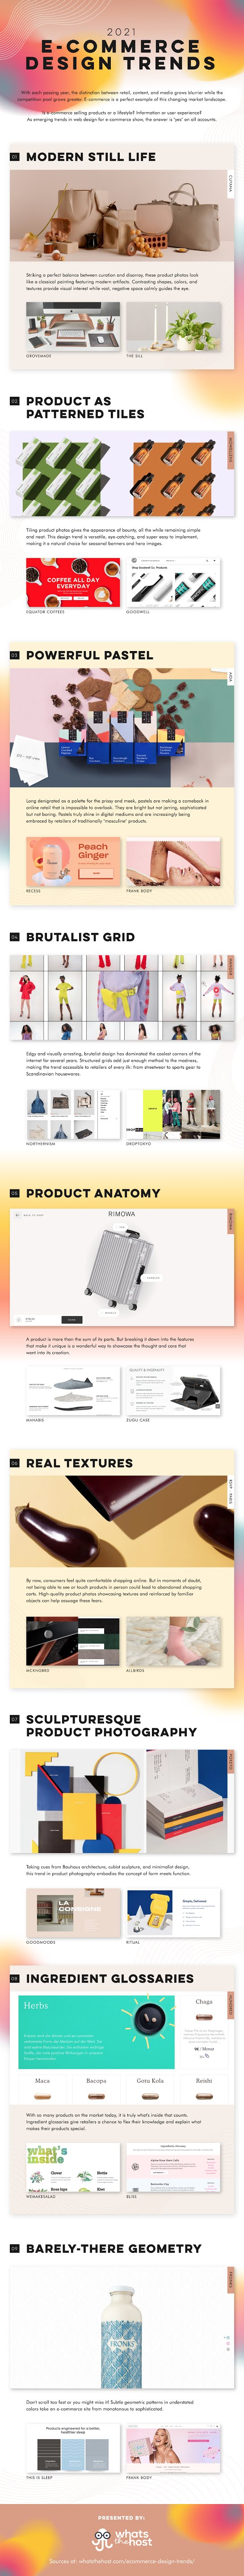 9 Versatile Trends For Ecommerce Design Inspiration In 2021 #infographic #Ecommerce Design  #eCommerce #Design Trends #infographics #Infographic